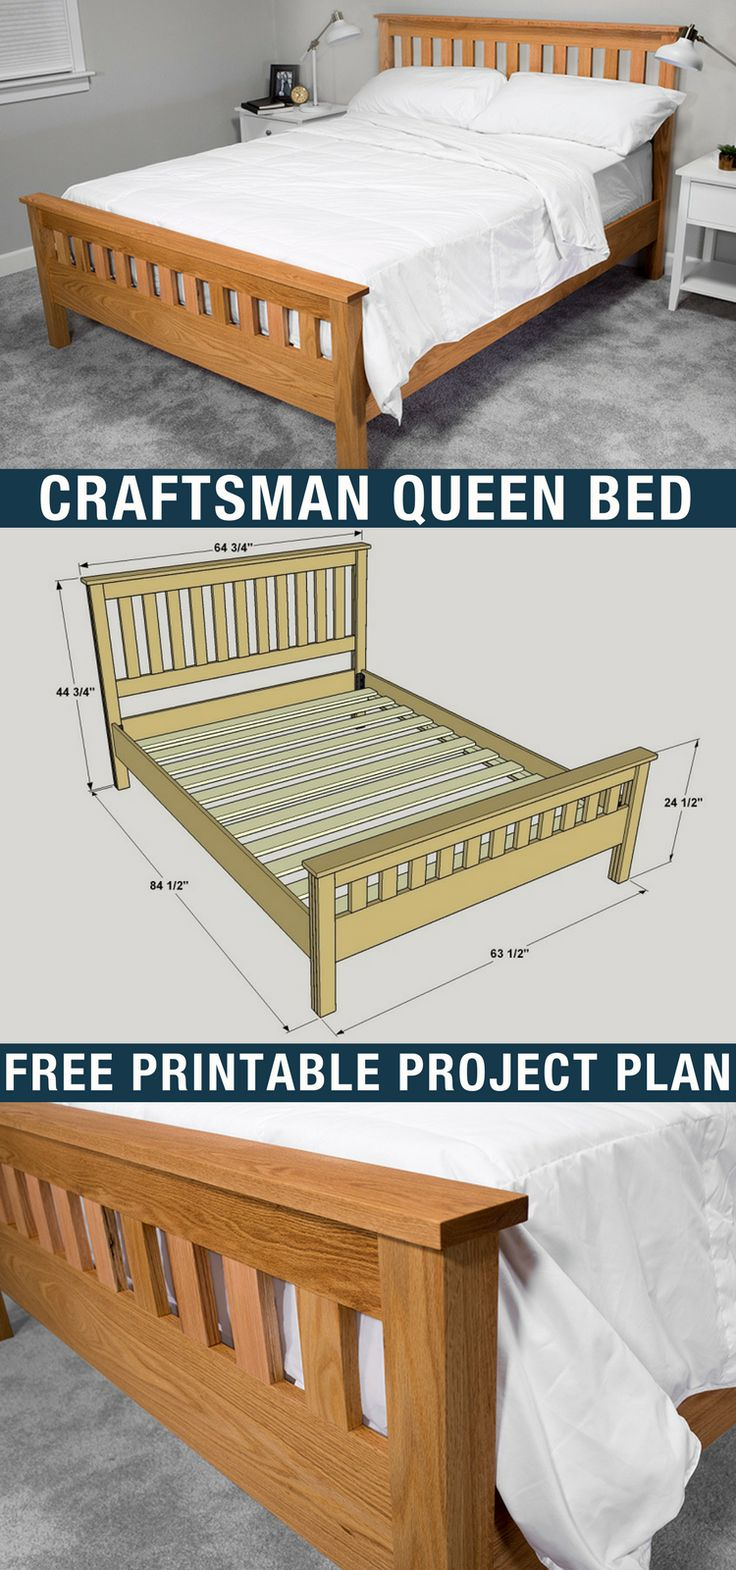 DIY Craftsman Style Queen Bed | Free printable project plans on buildsomething.com | Furniture from the Craftsman/Arts and Crafts Style remains incredibly popular today thanks to timeless styling and simple lines. Those are both present in this queen-size bed. You can build one more easily than you thought, too. The cuts are all straight, and it's assembled with pocket-hole joinery.